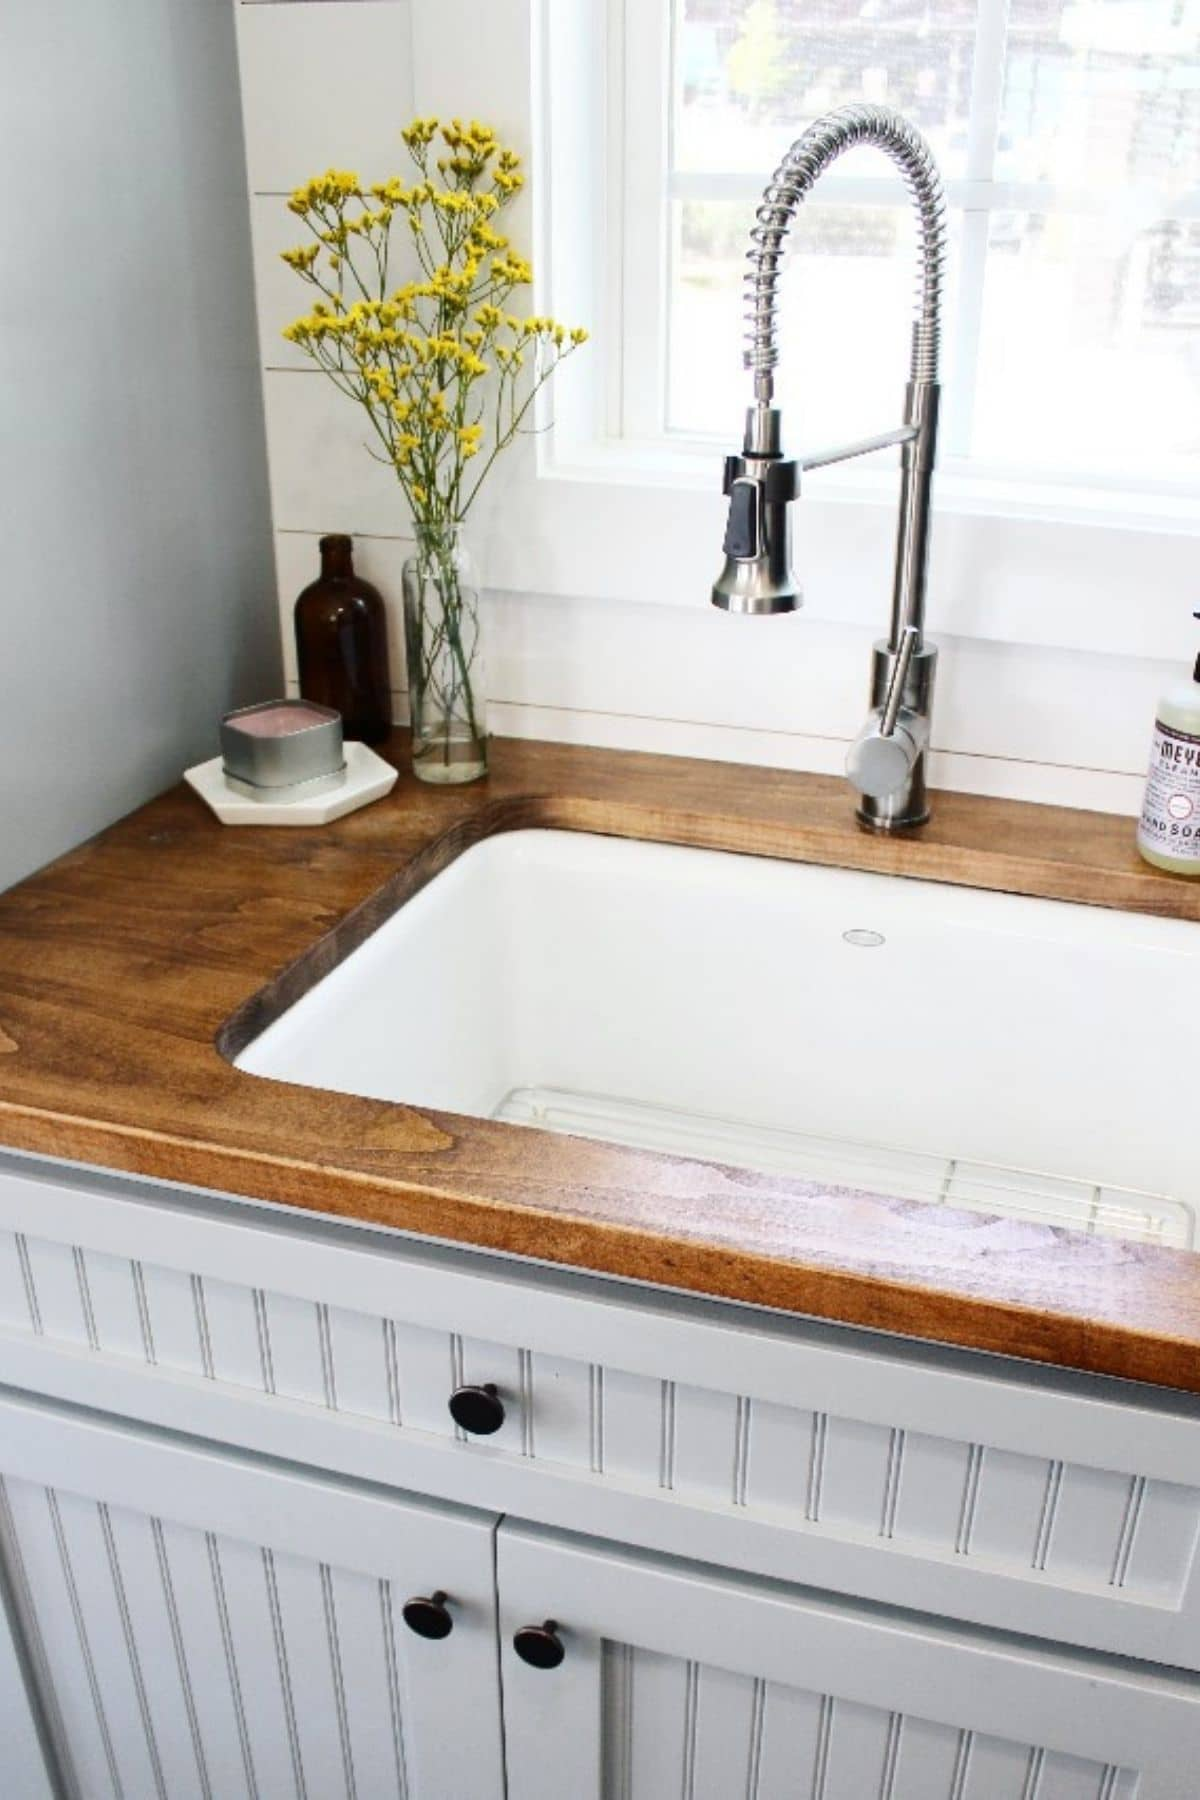 Deep white sink in wood countertop above gray cabinets